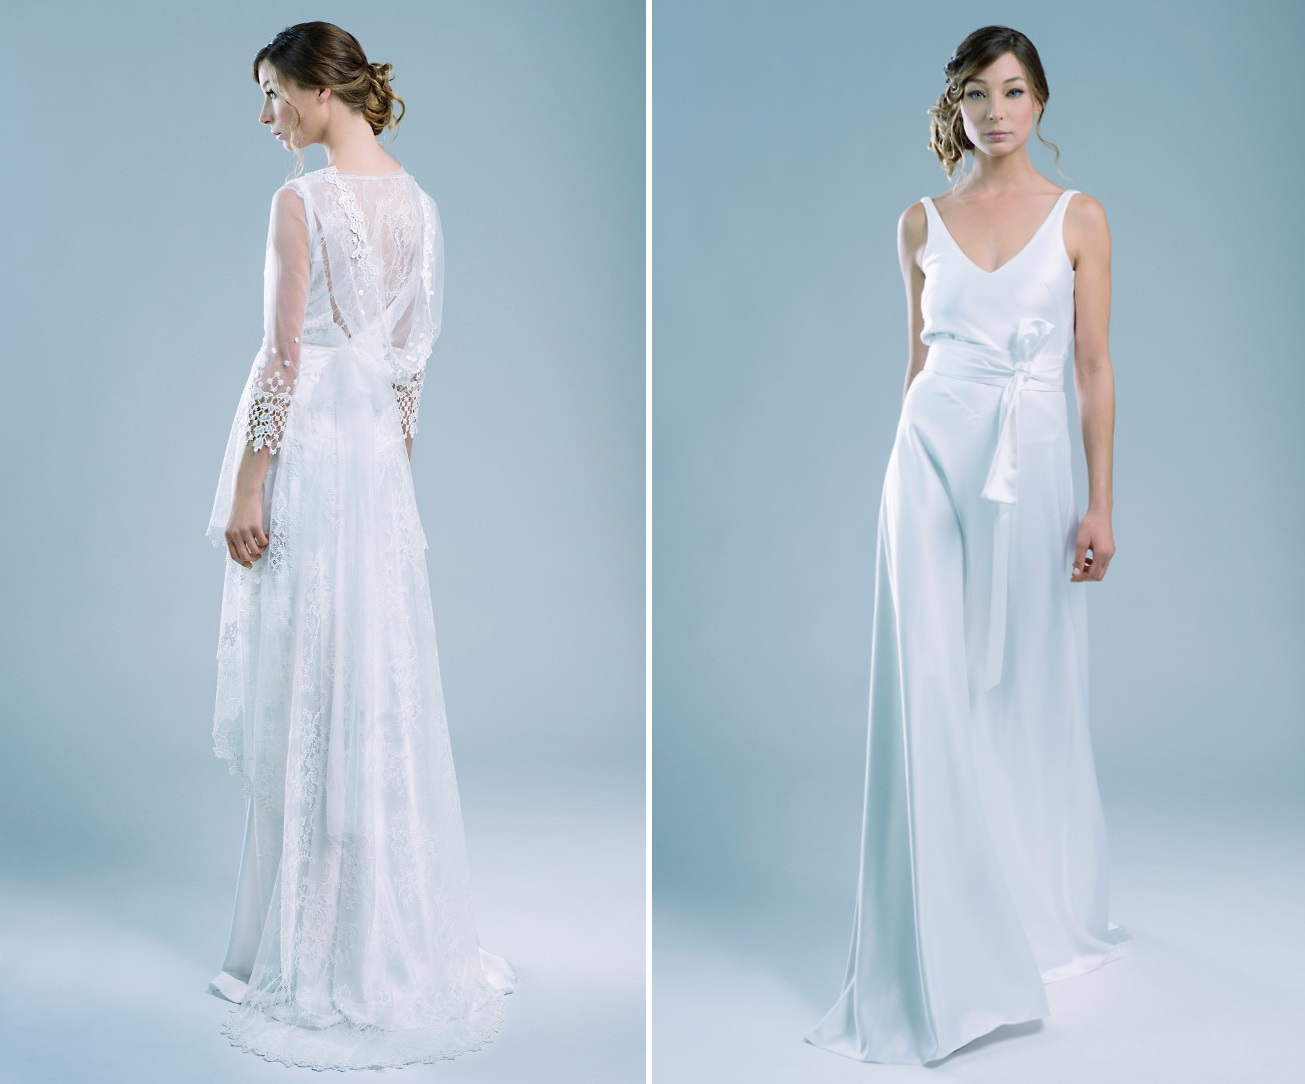 The Beautiful 2016 Bridal Collection from Petite Lumiere : Chic ...